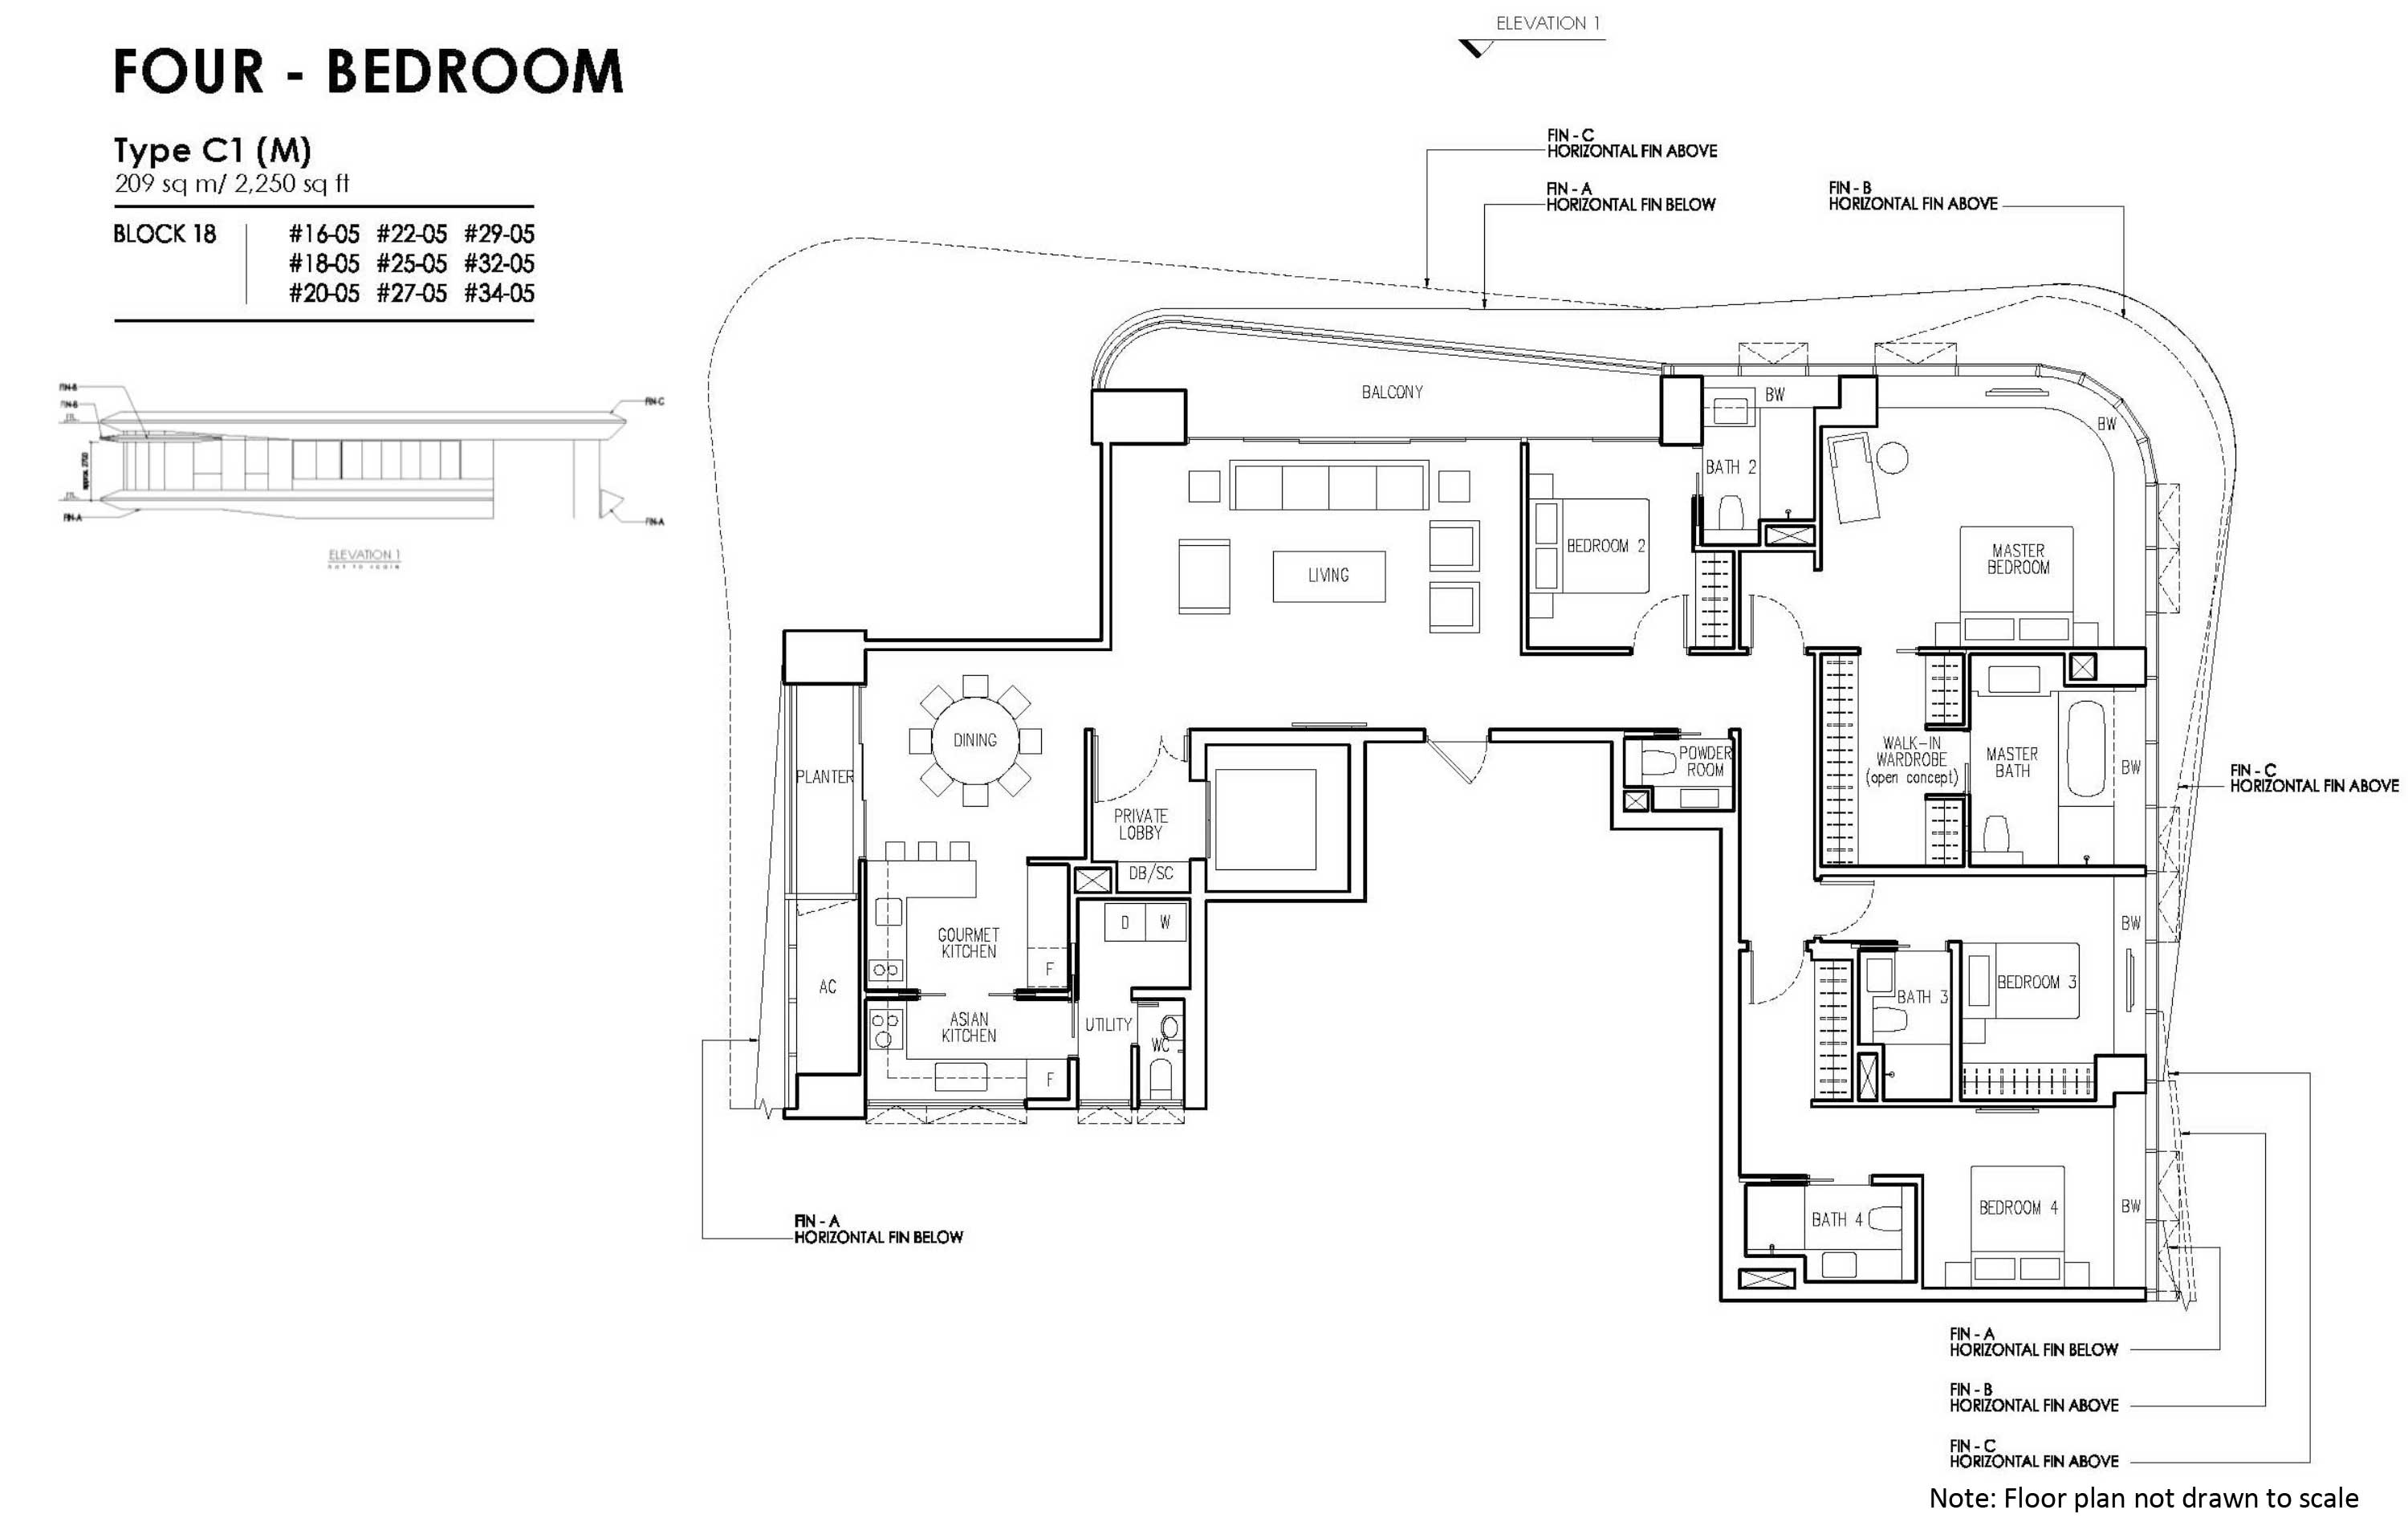 New futura at leonie hill road rare freehold luxury - Average pg e bill for 3 bedroom house ...